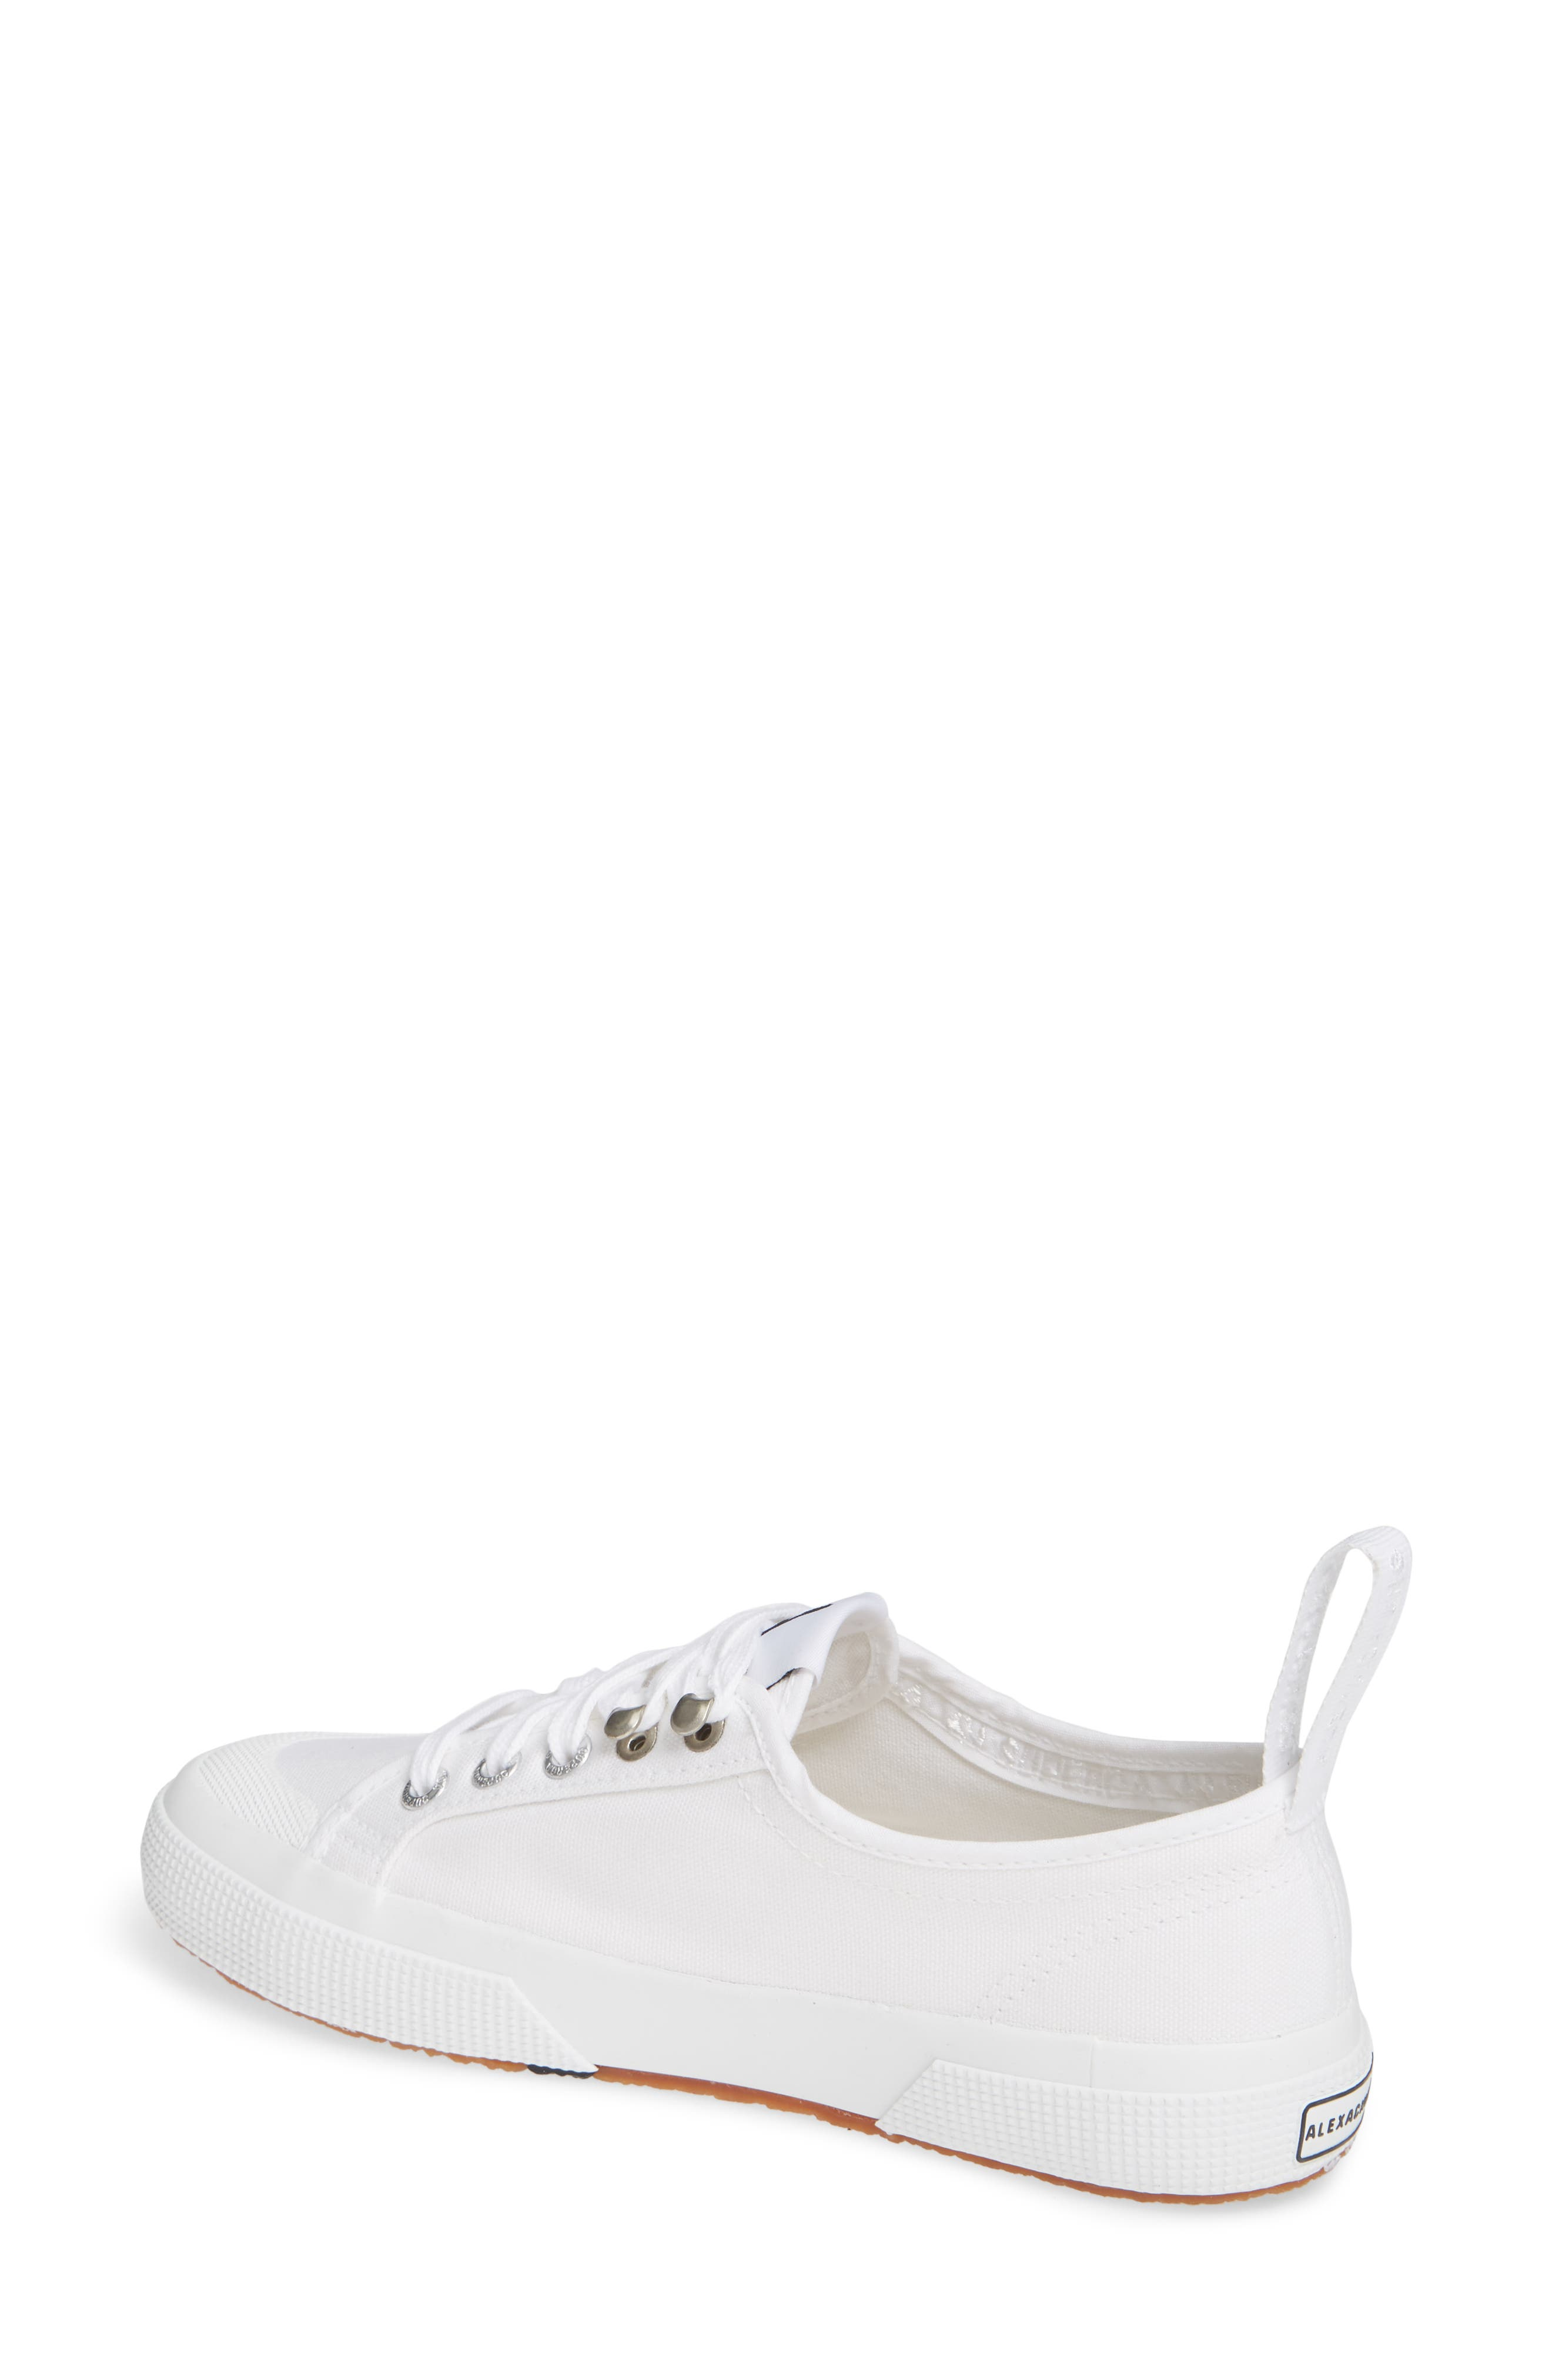 x Alexa Chung 2294 Cothookw Low Top Sneaker,                             Alternate thumbnail 2, color,                             WHITE